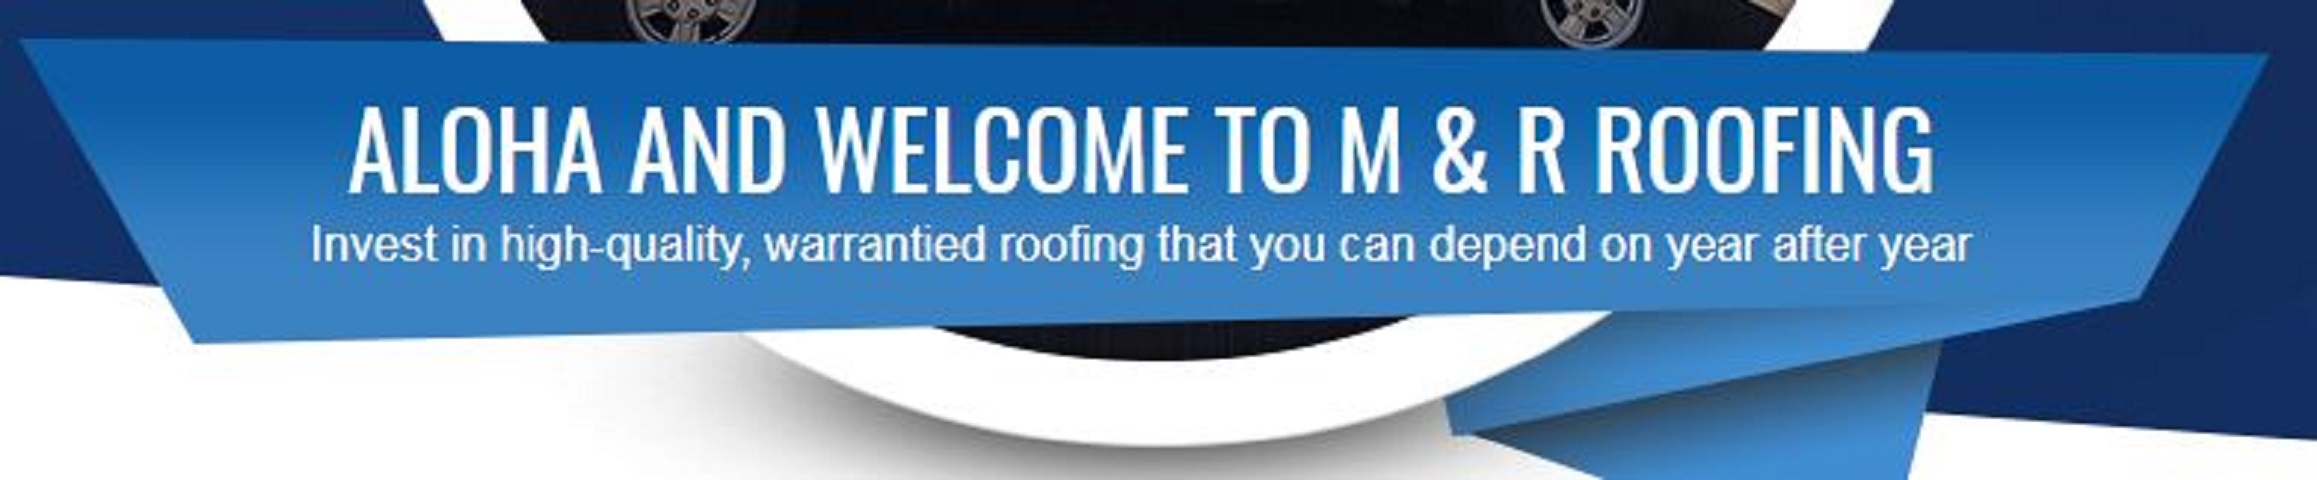 M & R Roofing Contractor and Renovations - Kapolei, HI